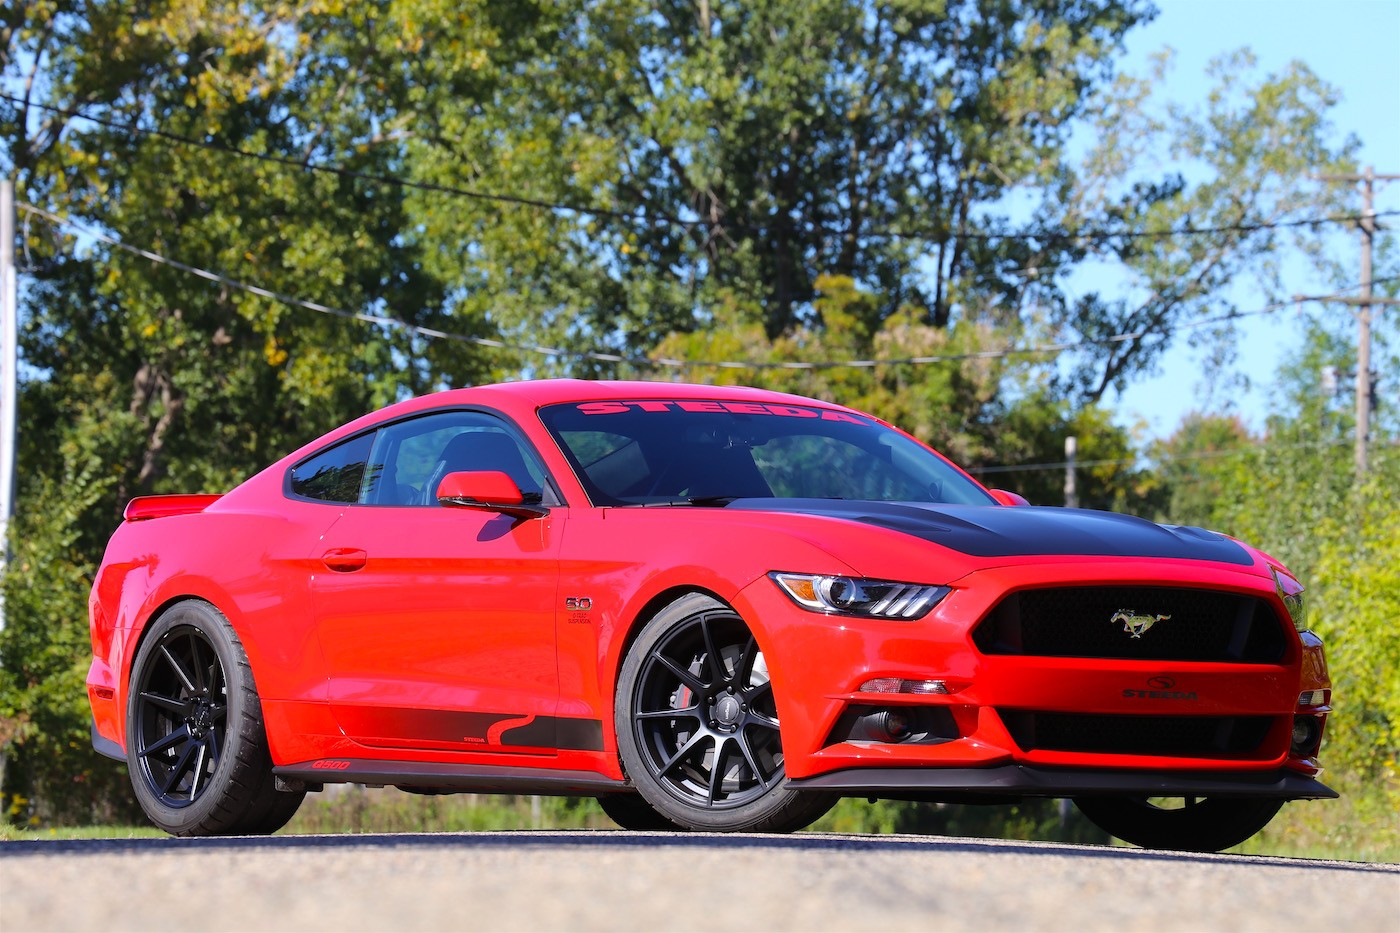 2017 Steeda Q750 Streetfighter Mustang Packs Hellcat